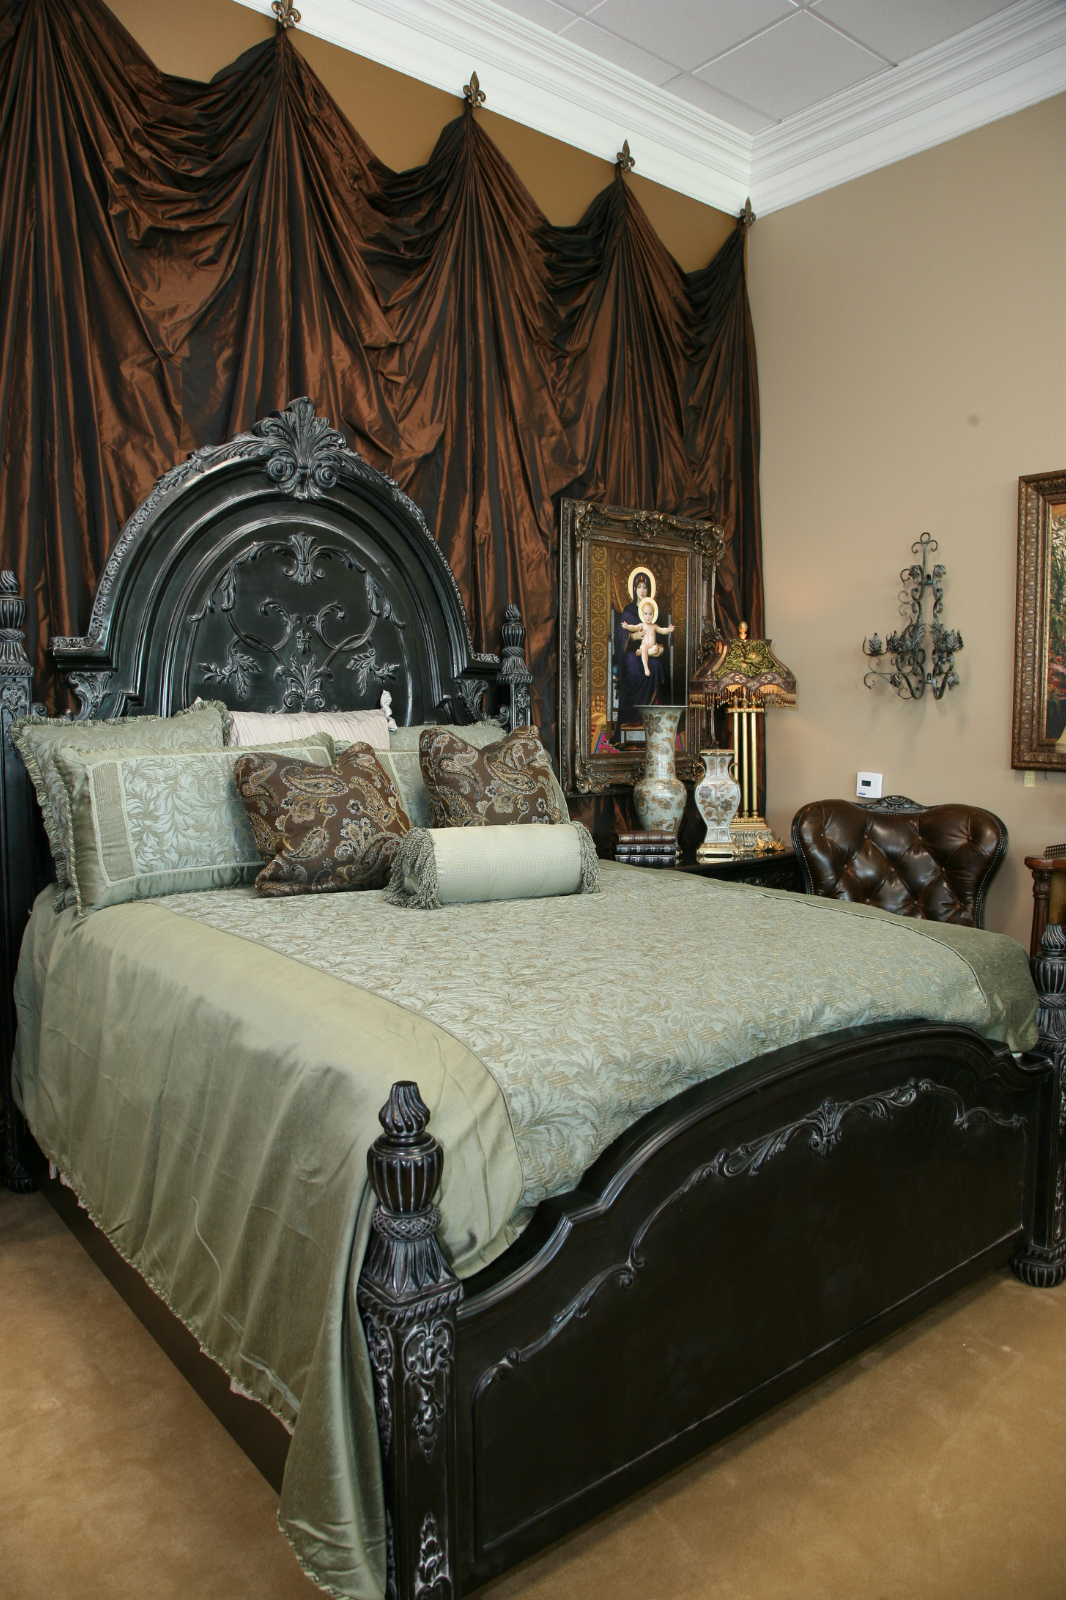 Black Ornate Bed